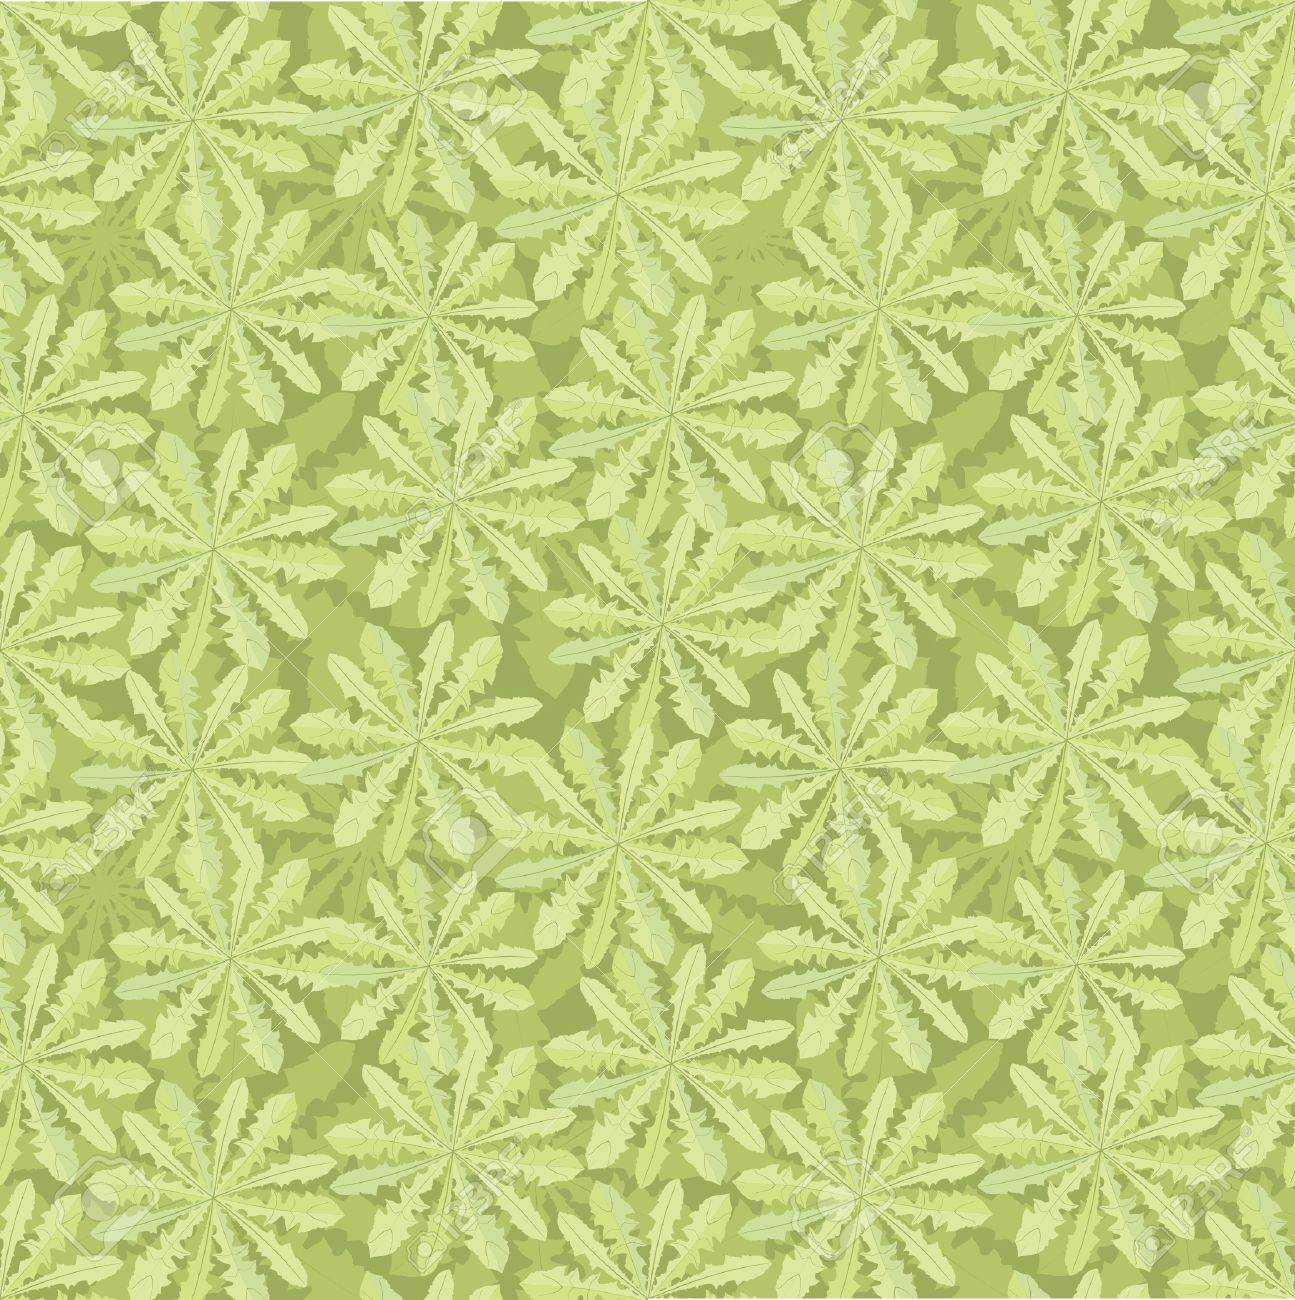 floral seamless pattern  grass background Stock Vector - 16228832